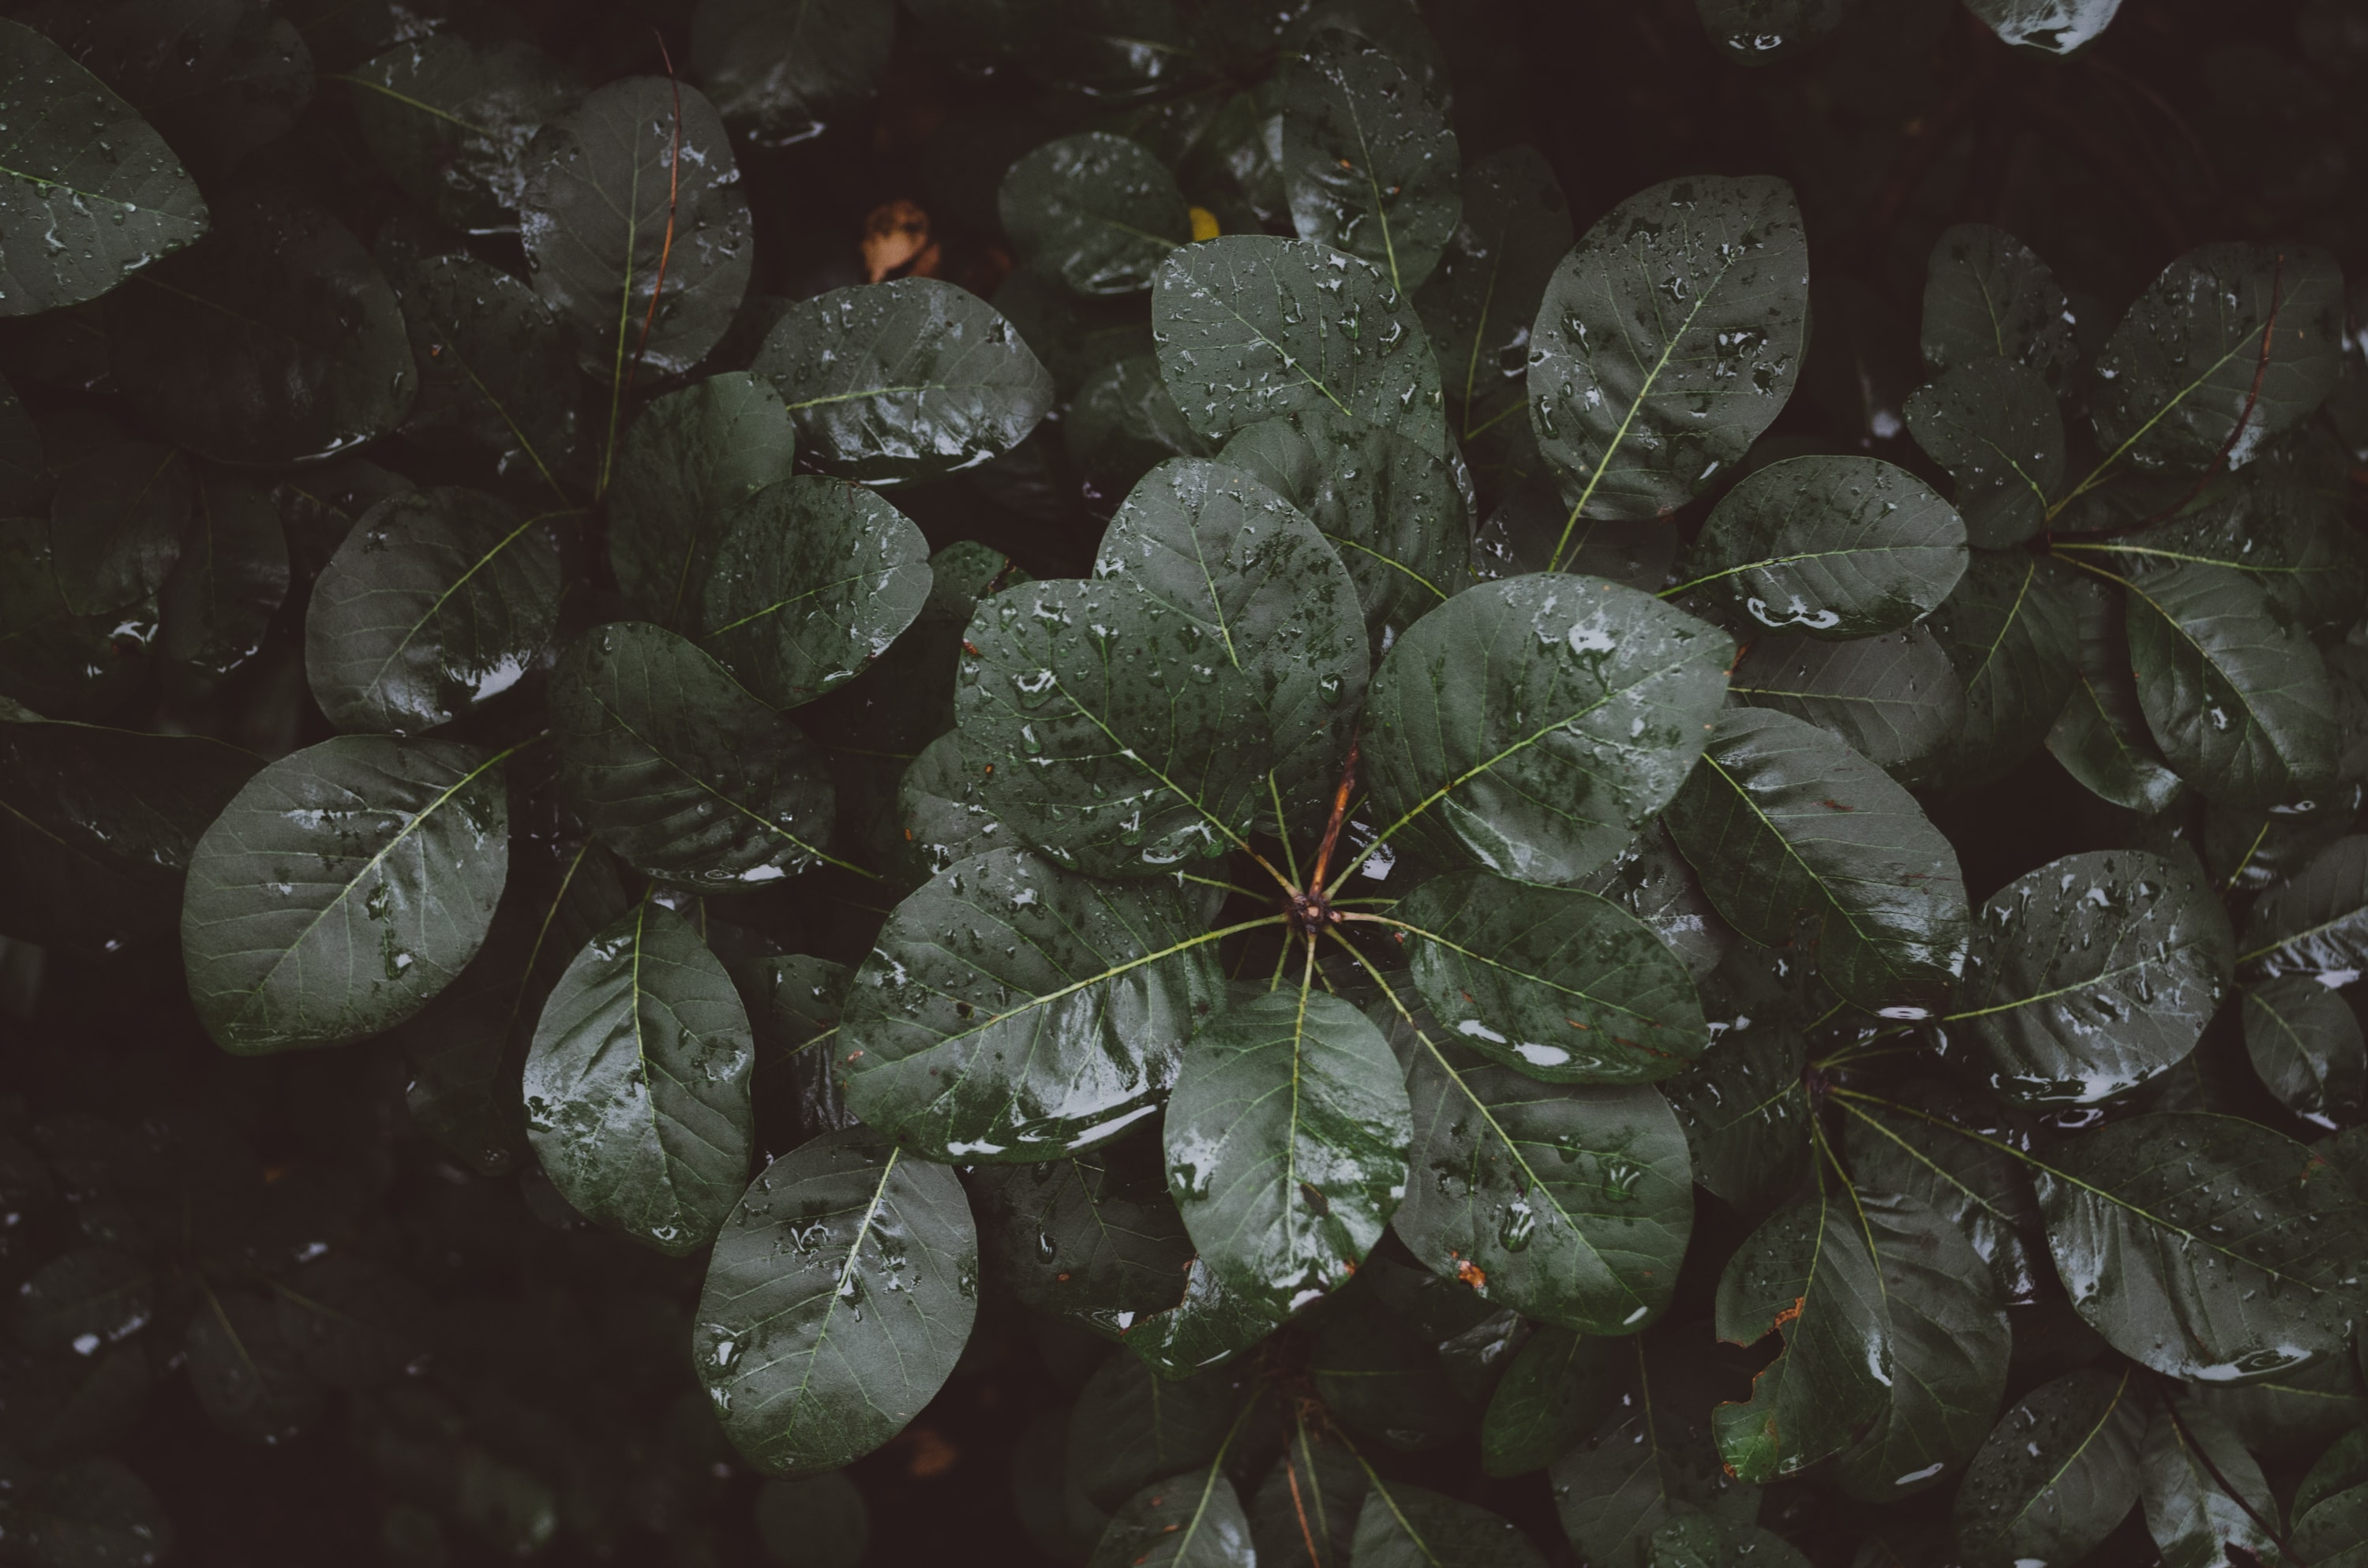 ovate green plant